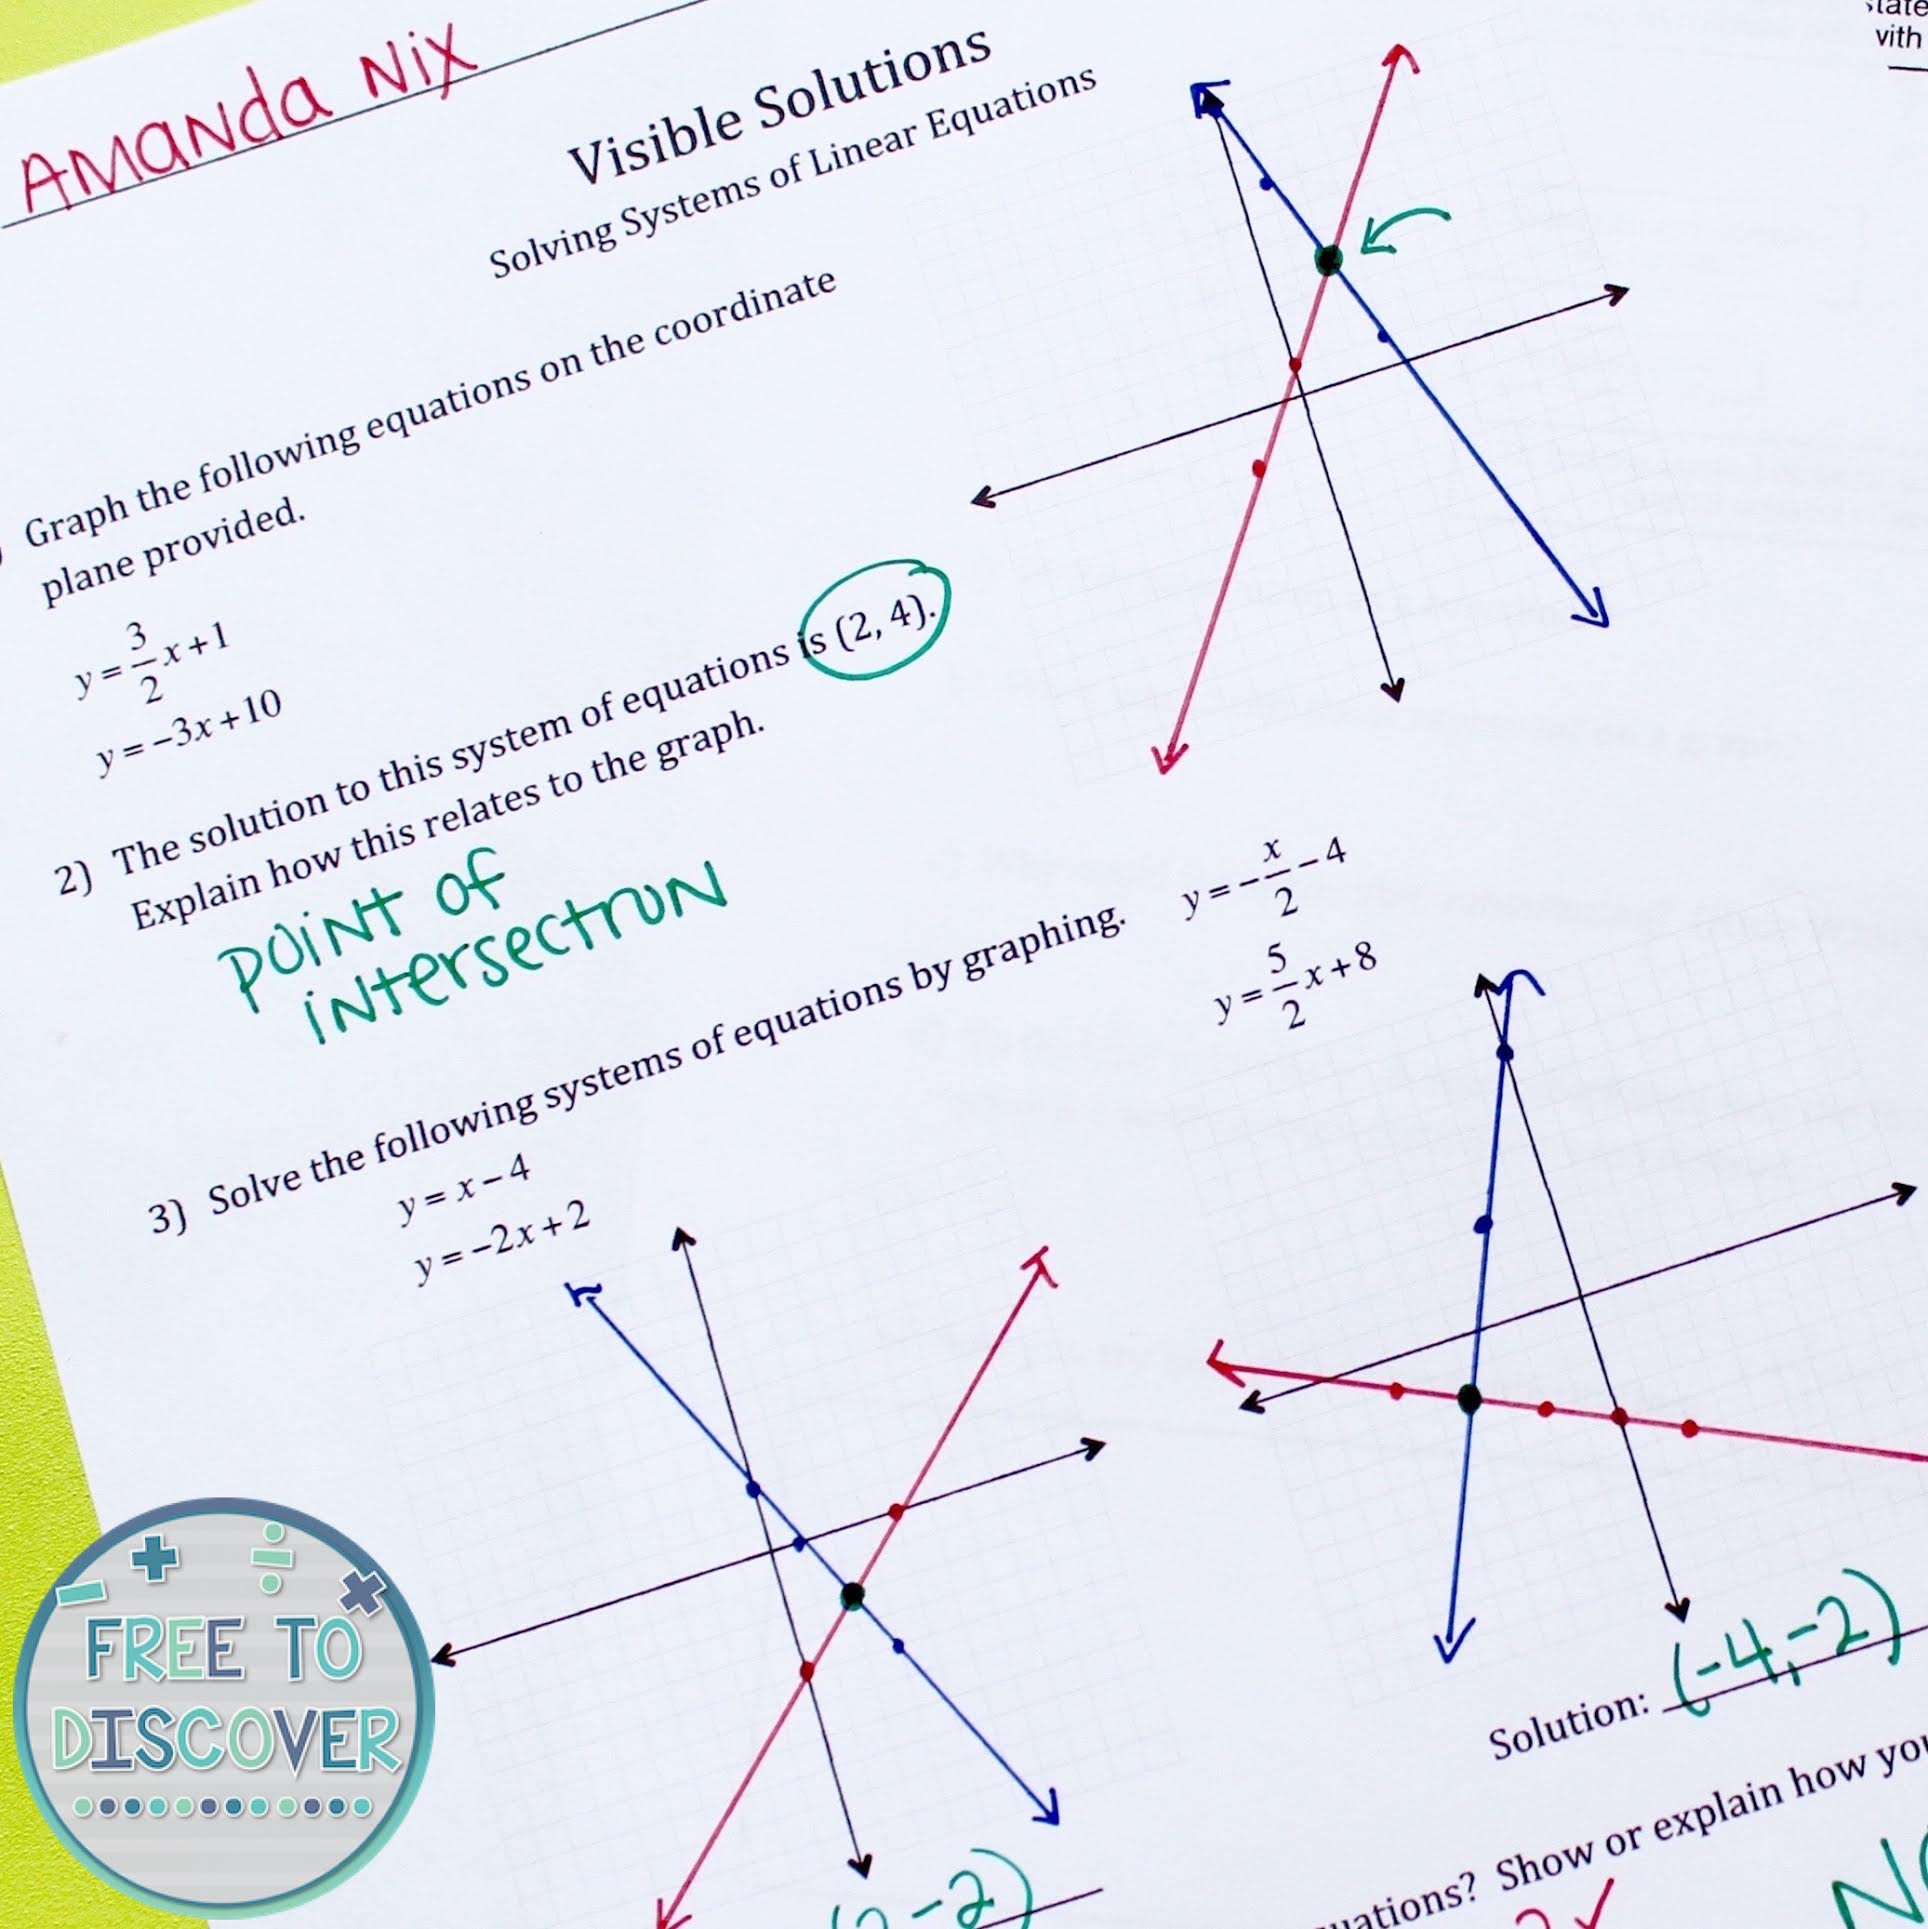 Teaching Systems of Linear Equations: Tips, Strategies & a Freebie